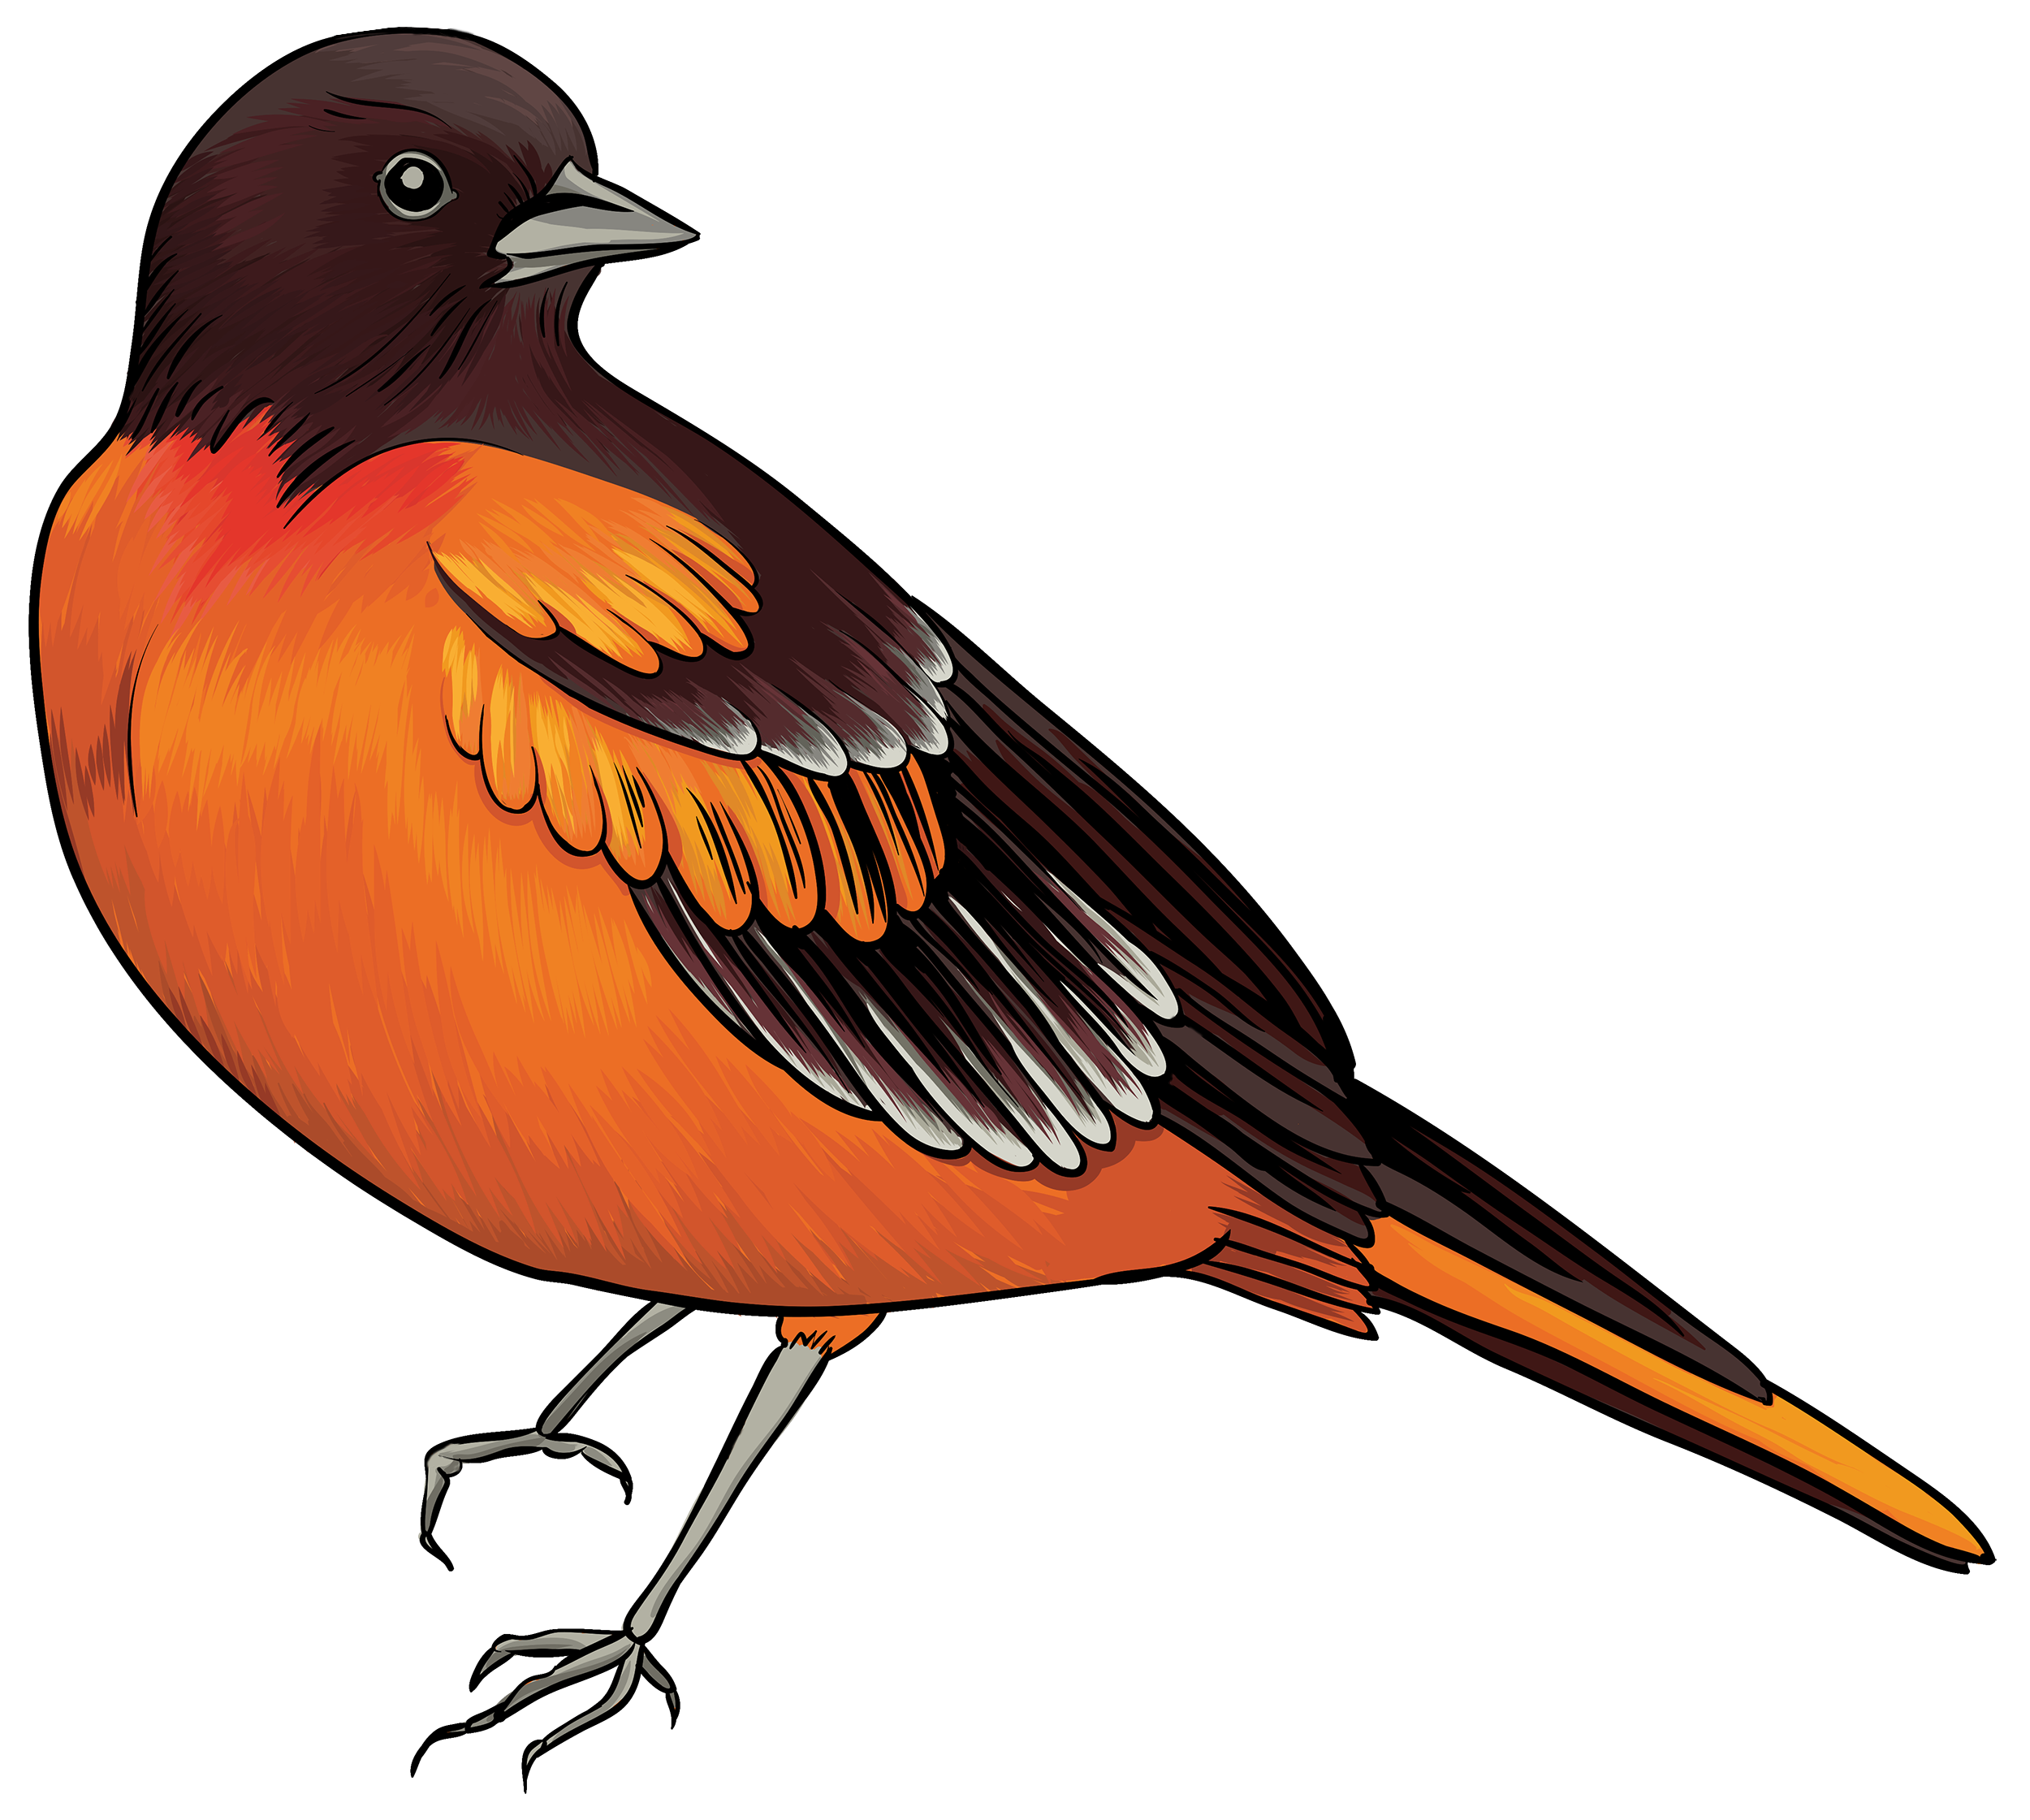 Bird clipart png. Black and orange best